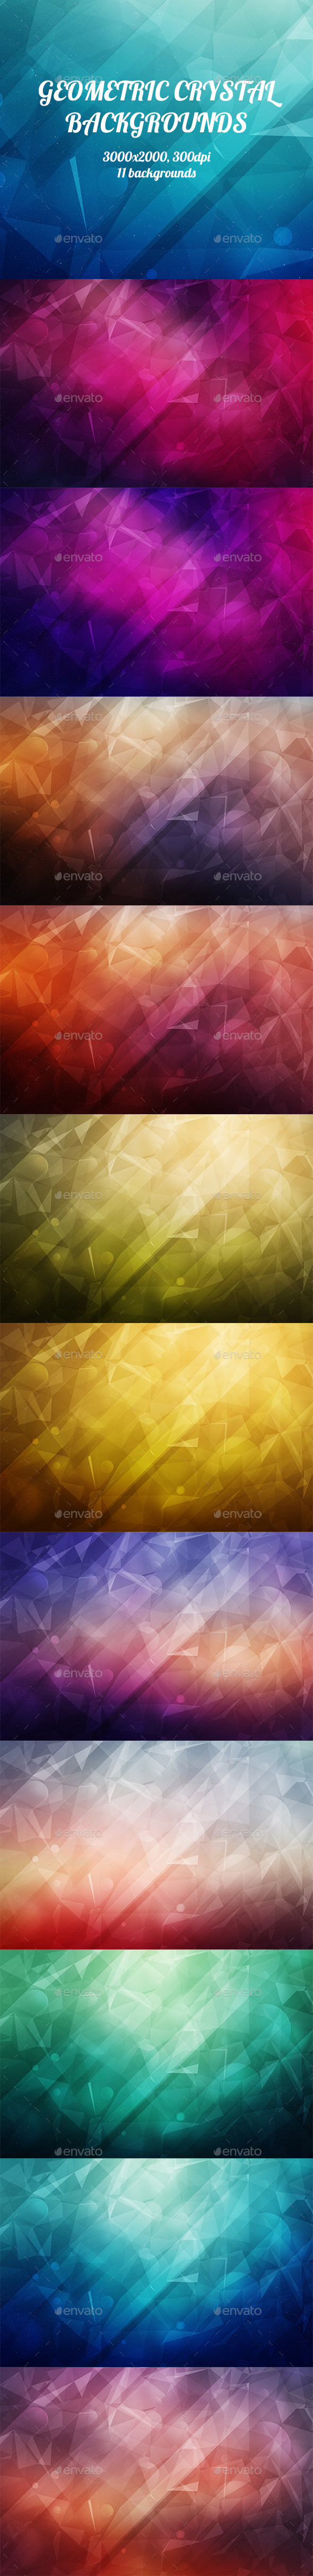 GraphicRiver Geometric Crystal Backgrounds 8823124